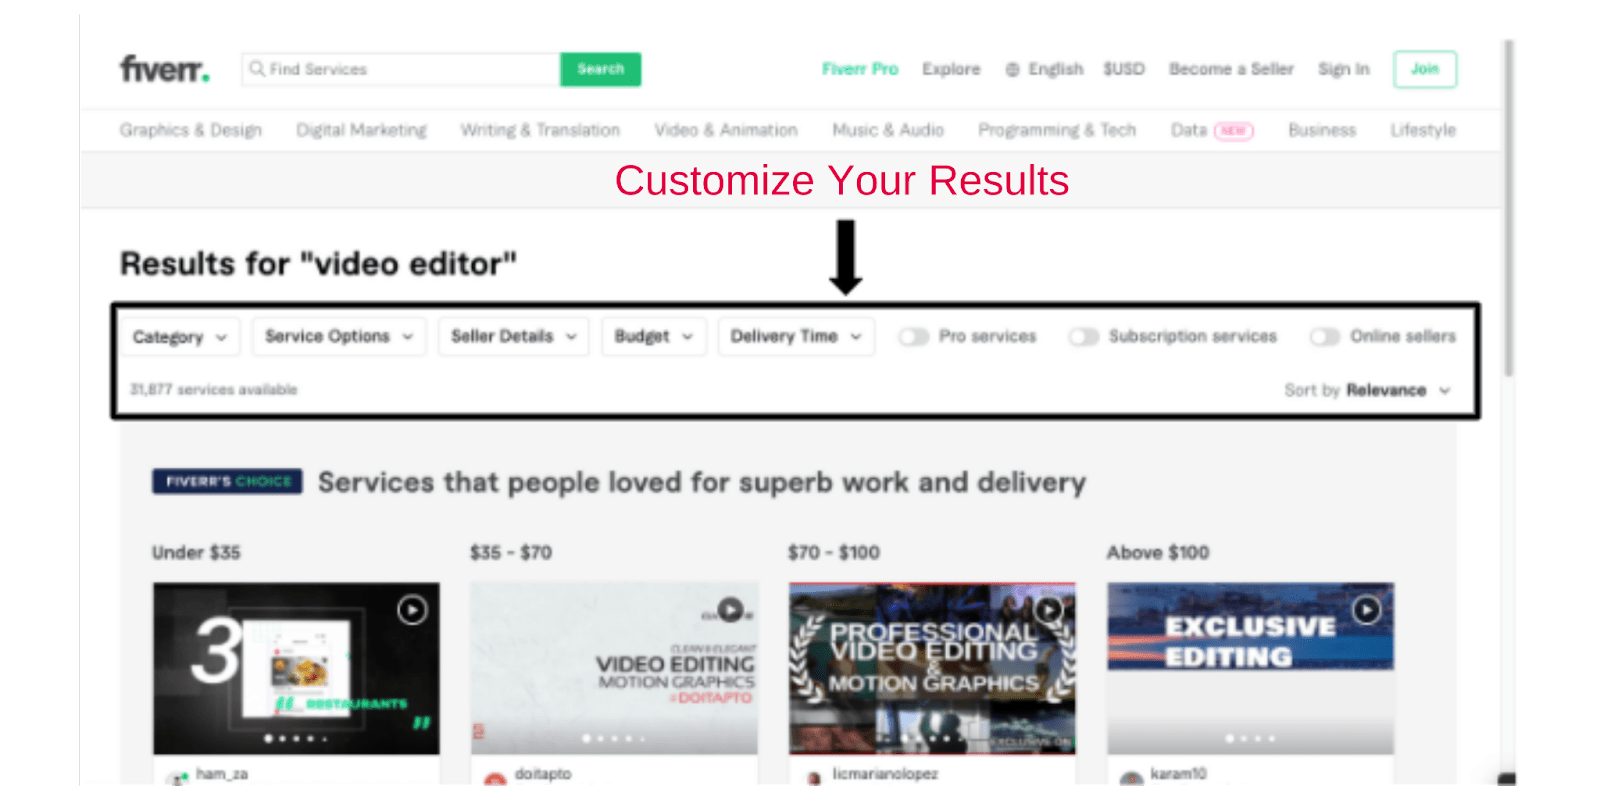 Fobest-results-customize-your-search